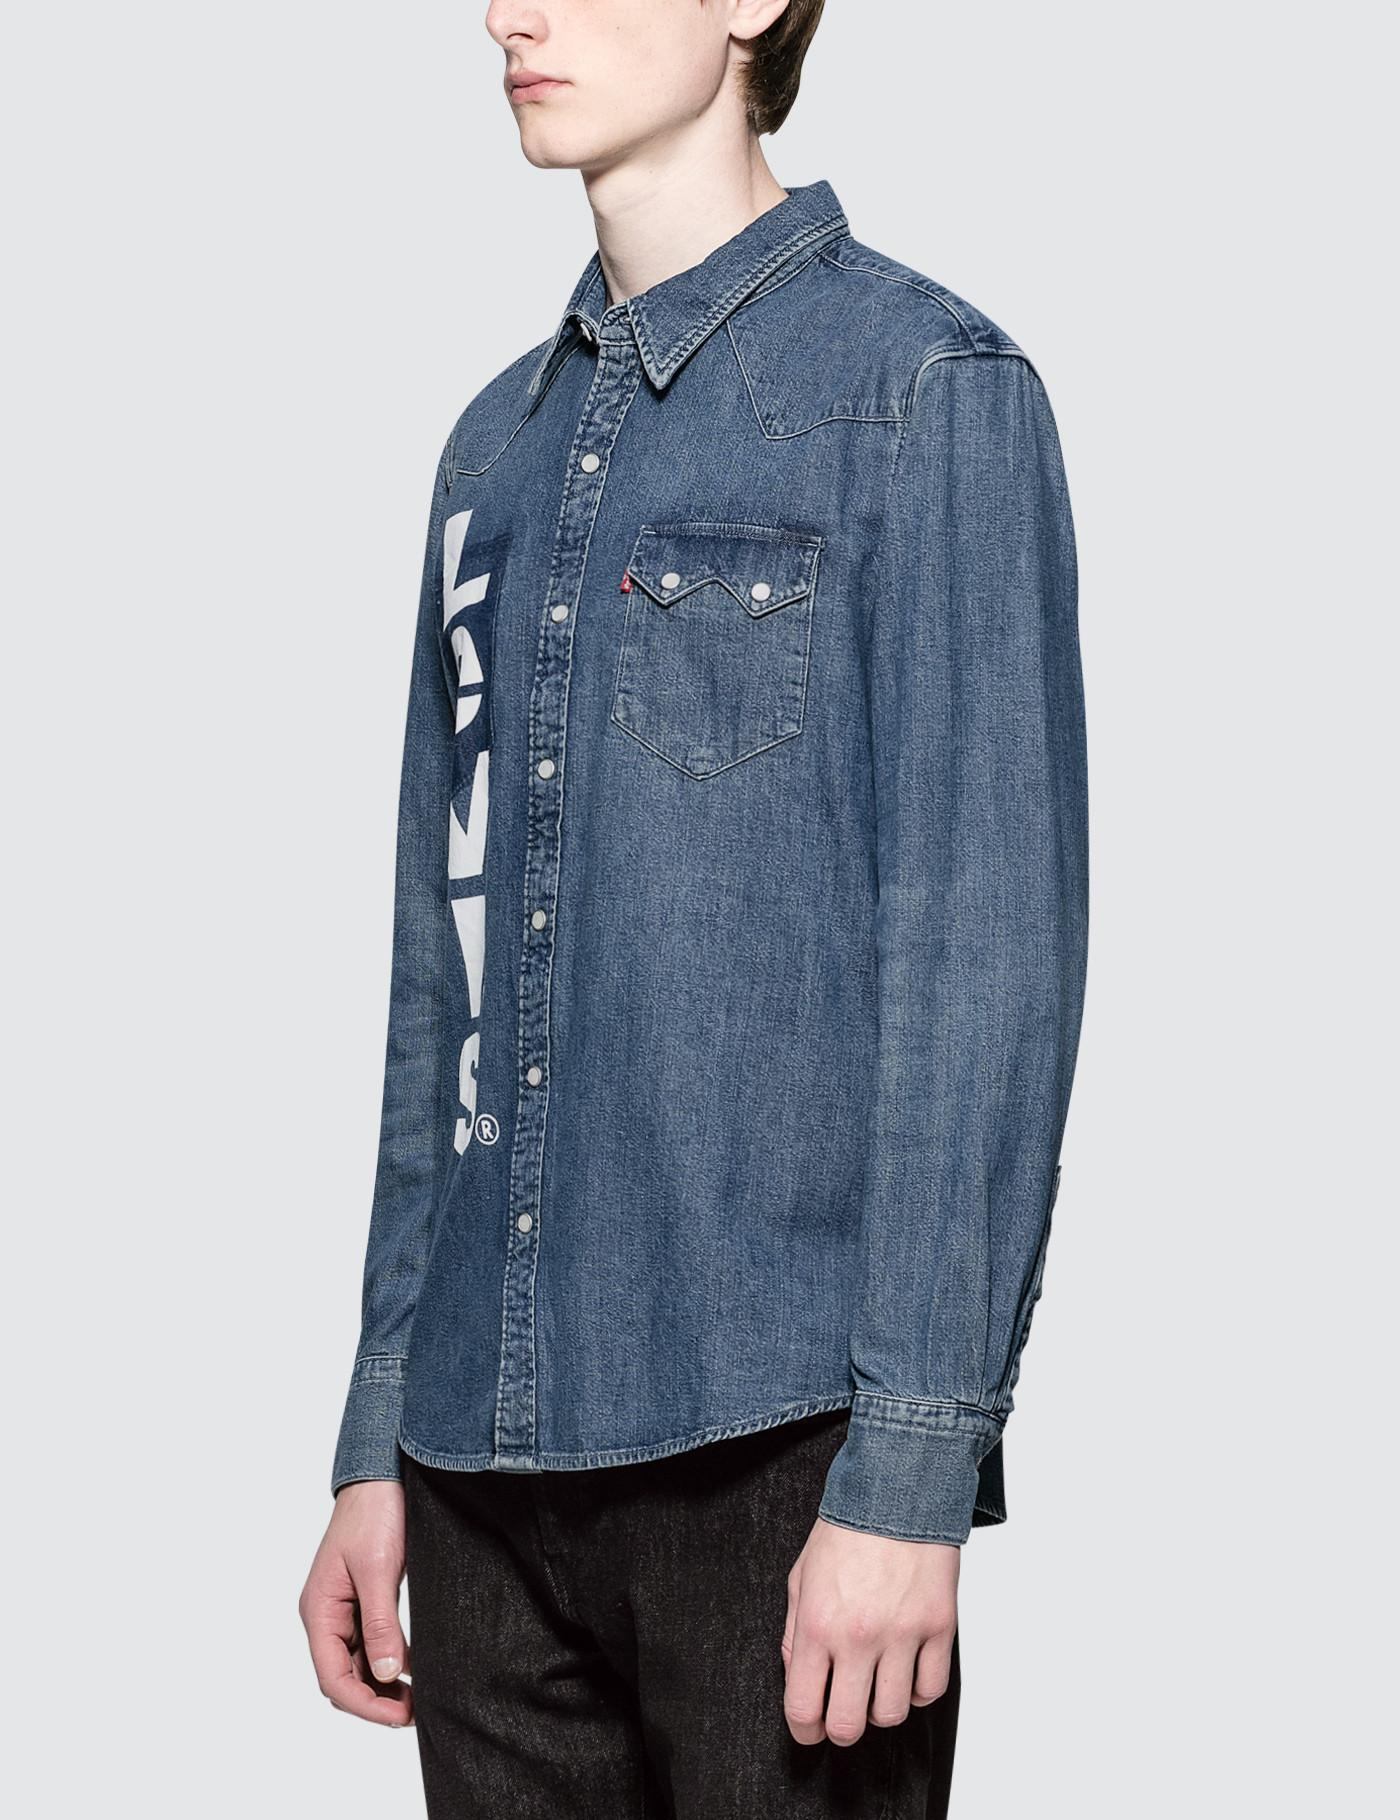 353c8fdca2 Lyst - Levi s Unbasic Sawtooth Shirt in Blue for Men